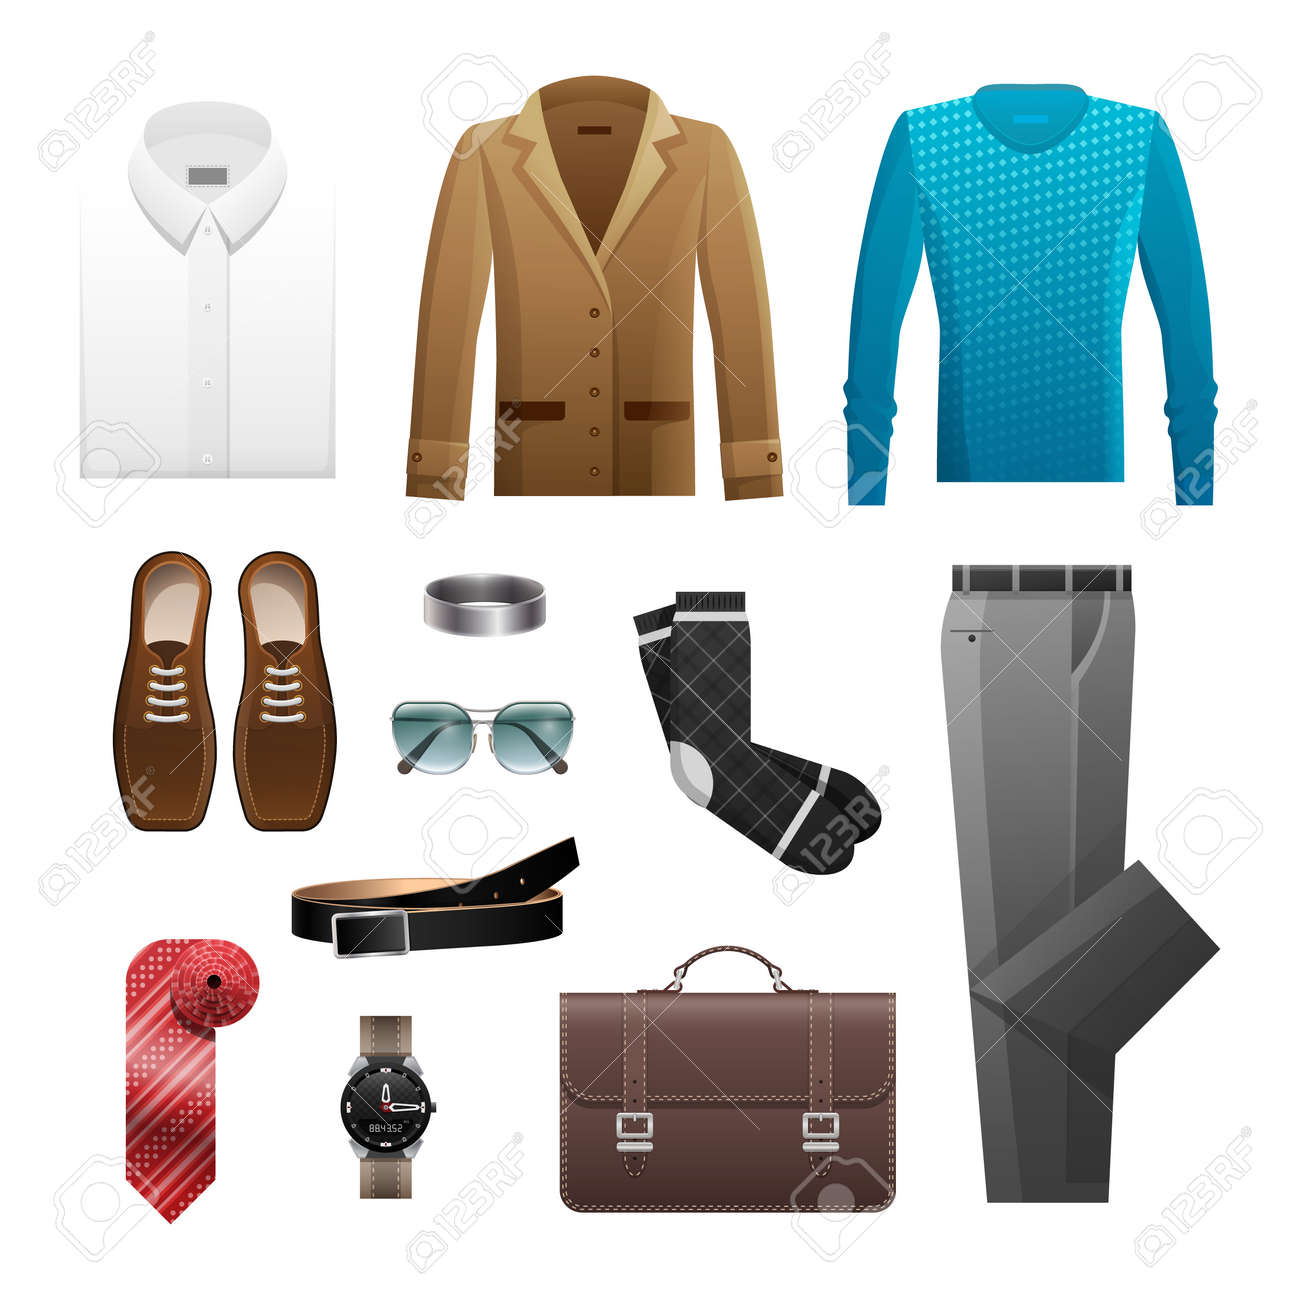 d4d65b221f0 Men S Outfits Set For Everyday Life On White Royalty Free Cliparts ...